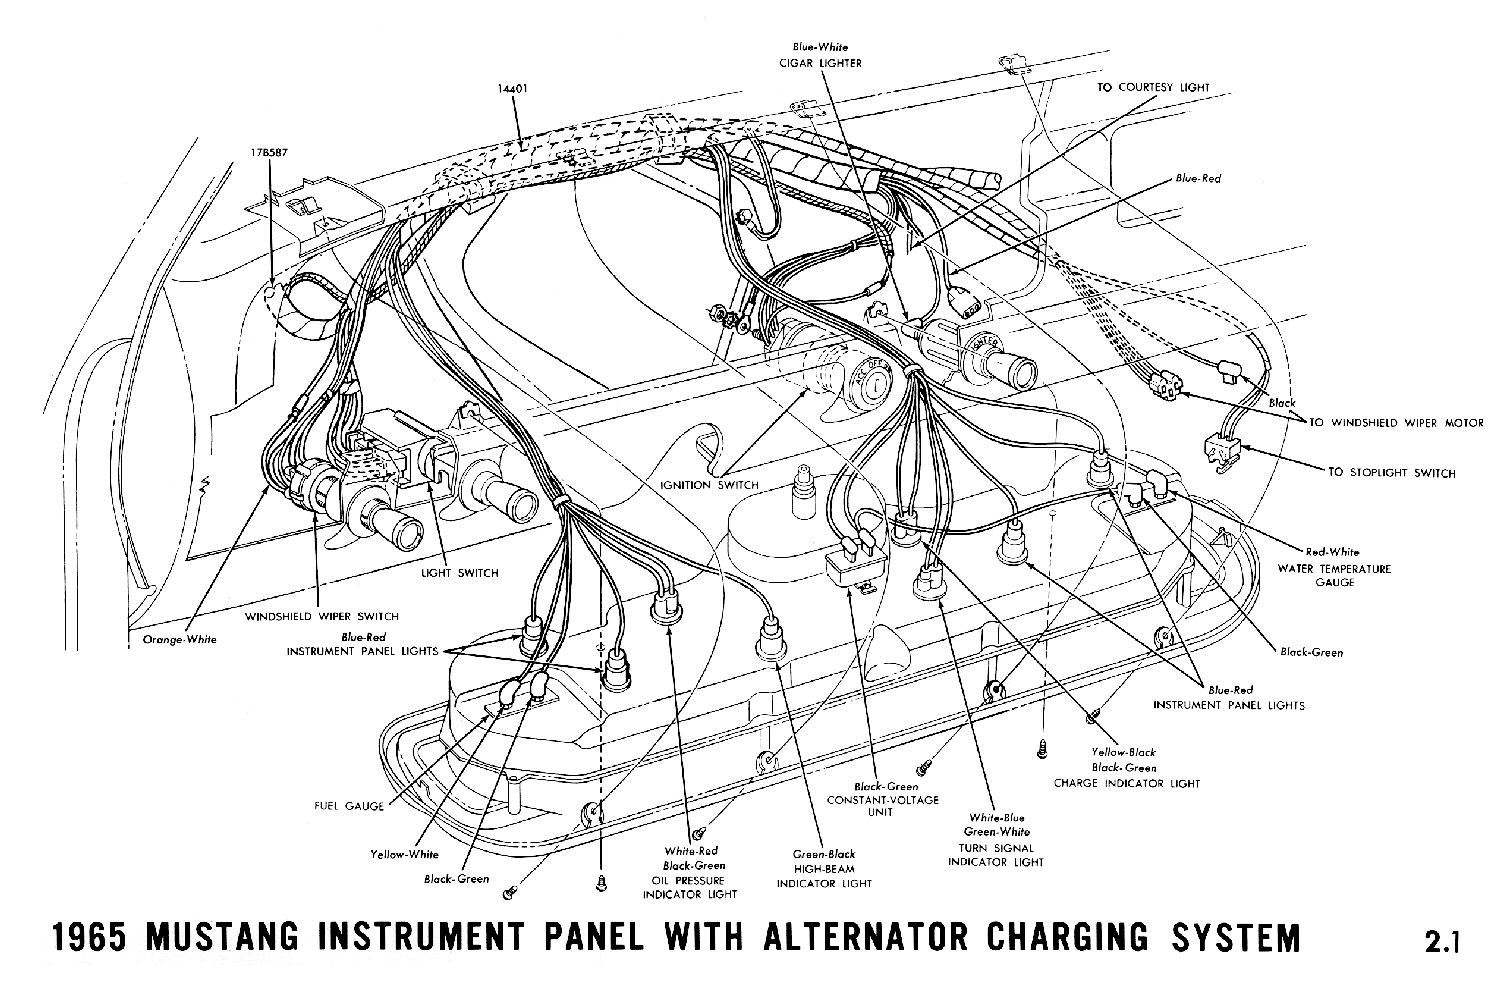 65 Mustang Under Dash Wiring Diagram Opinions About 68 Ignition 1965 Diagrams Average Joe Restoration Rh Averagejoerestoration Com 1968